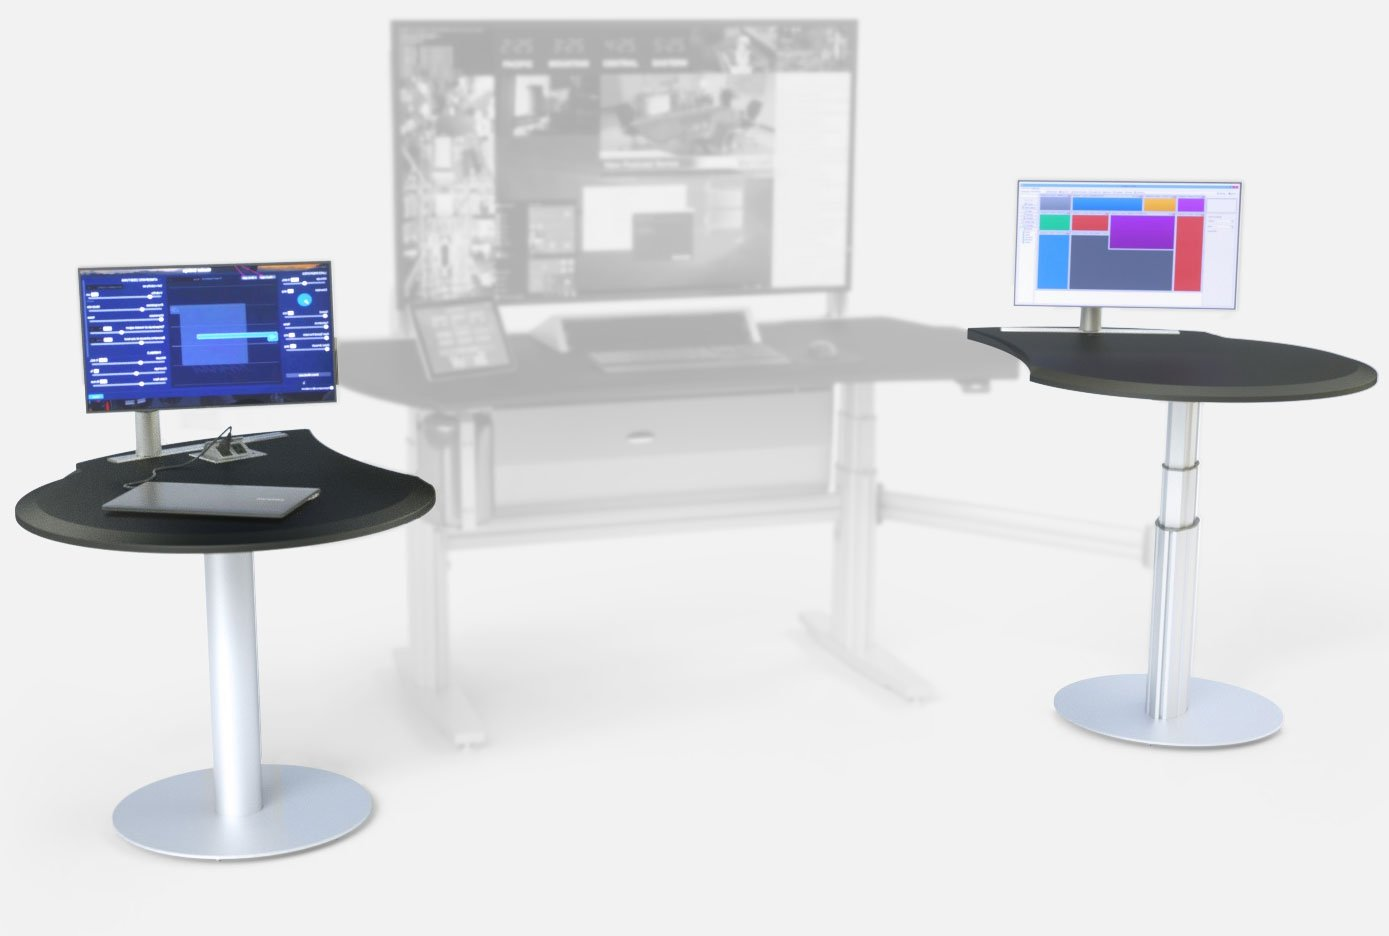 Fixed Height Side Table SC-PTL (left), Standard TBC Console ST2-1T (center), Height-Adjustable Side Table SCE-PTR (right)